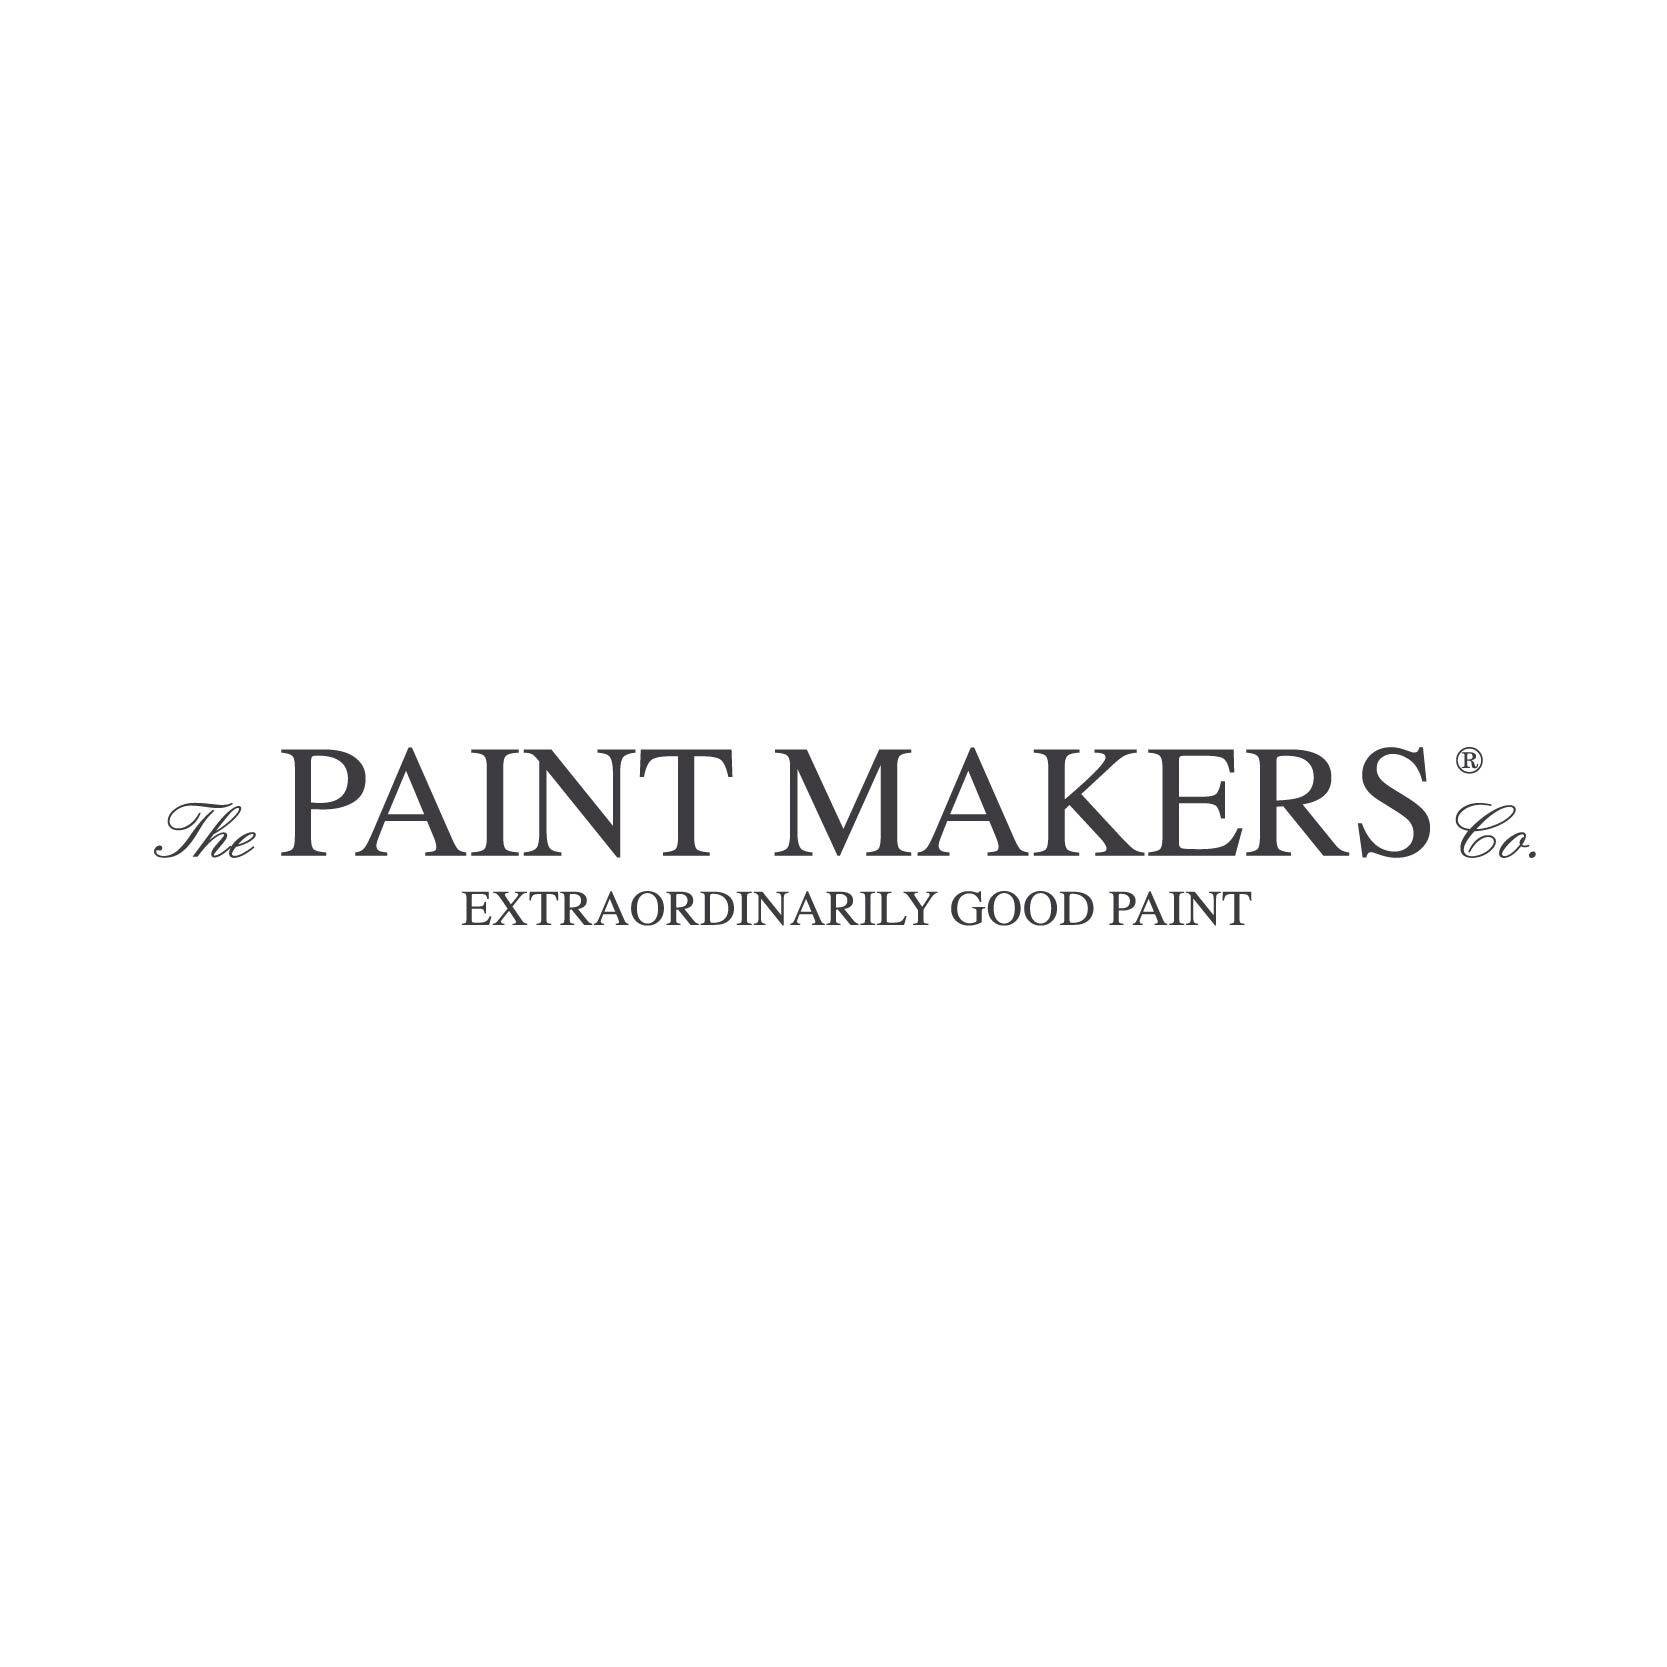 LOGO PAINTMAKERS-01